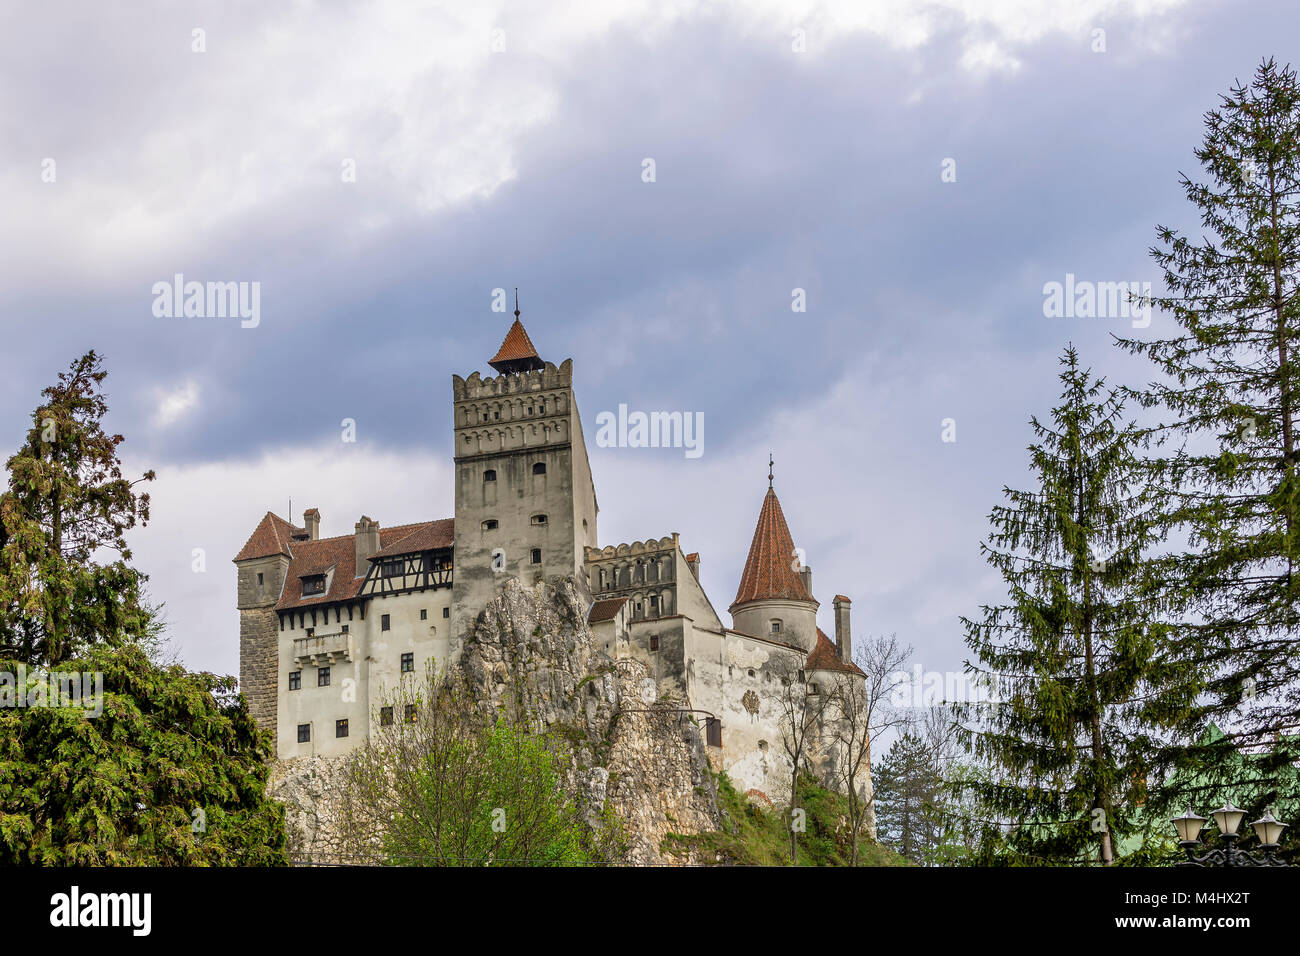 A view of the scary Bran Castle, Brasov County, Romania - Stock Image